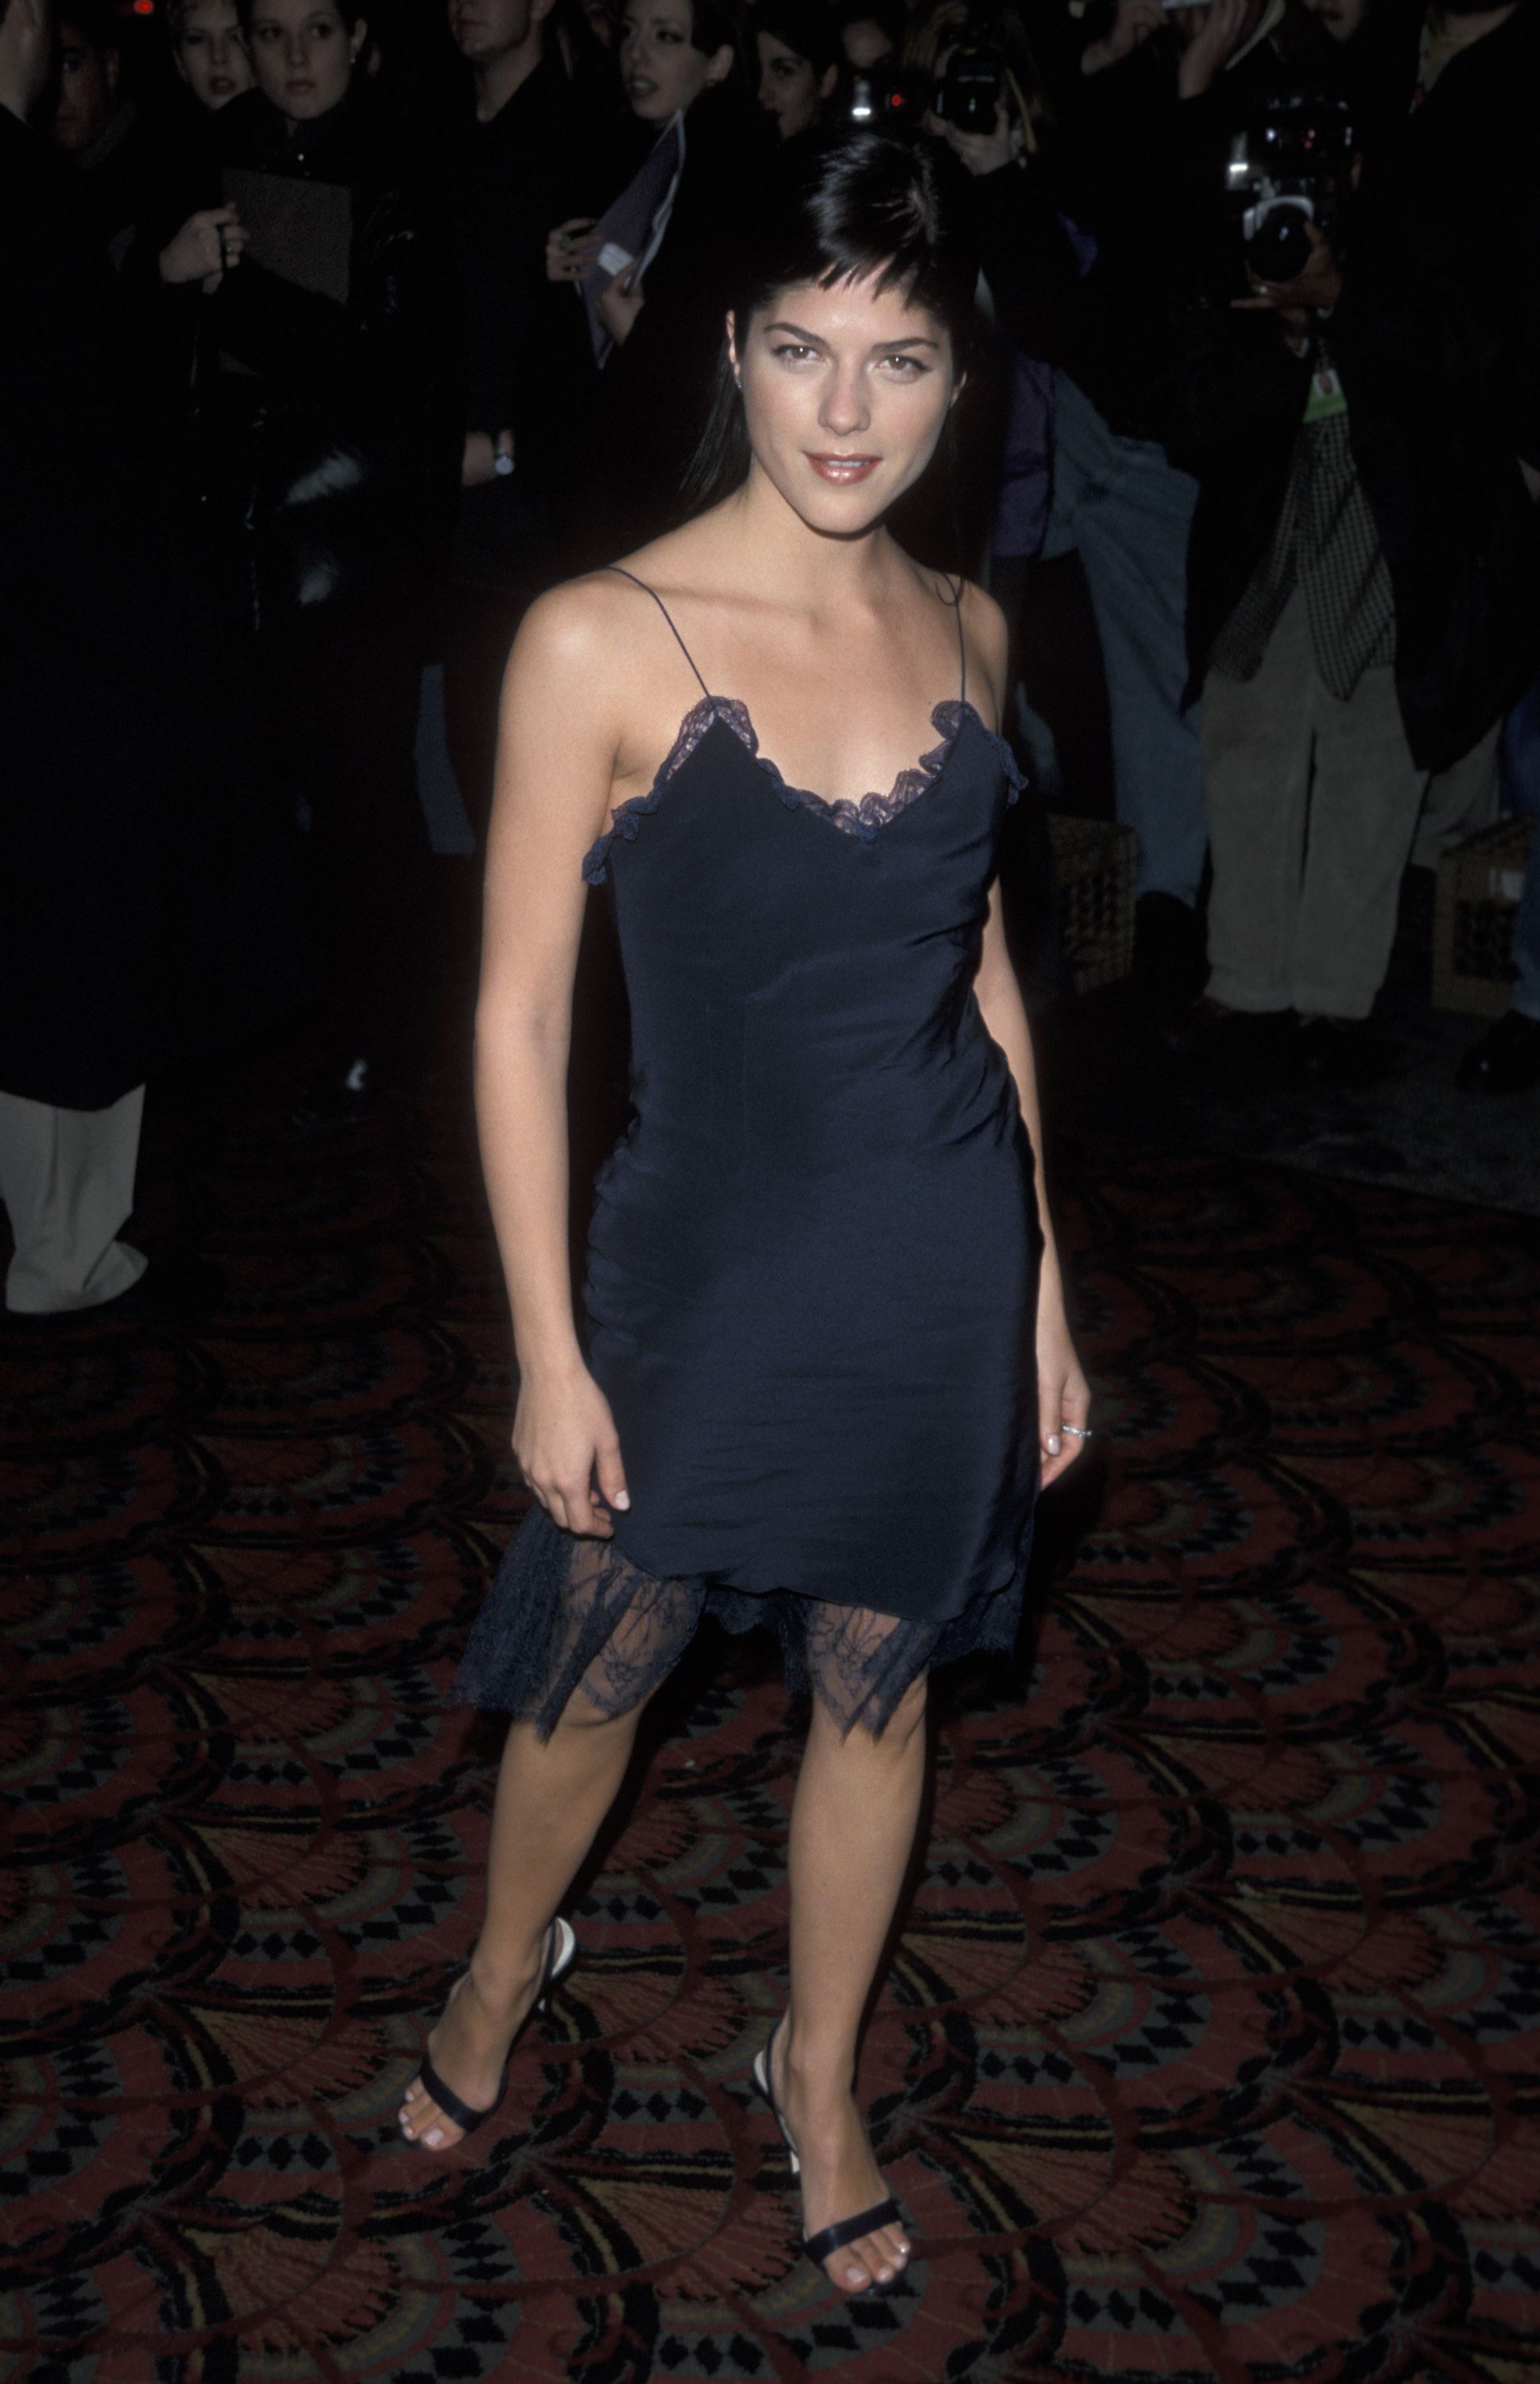 45dfae68938f A Visual History of the Slip Dress Worn by Kate Moss, Sophia Coppola, and  More